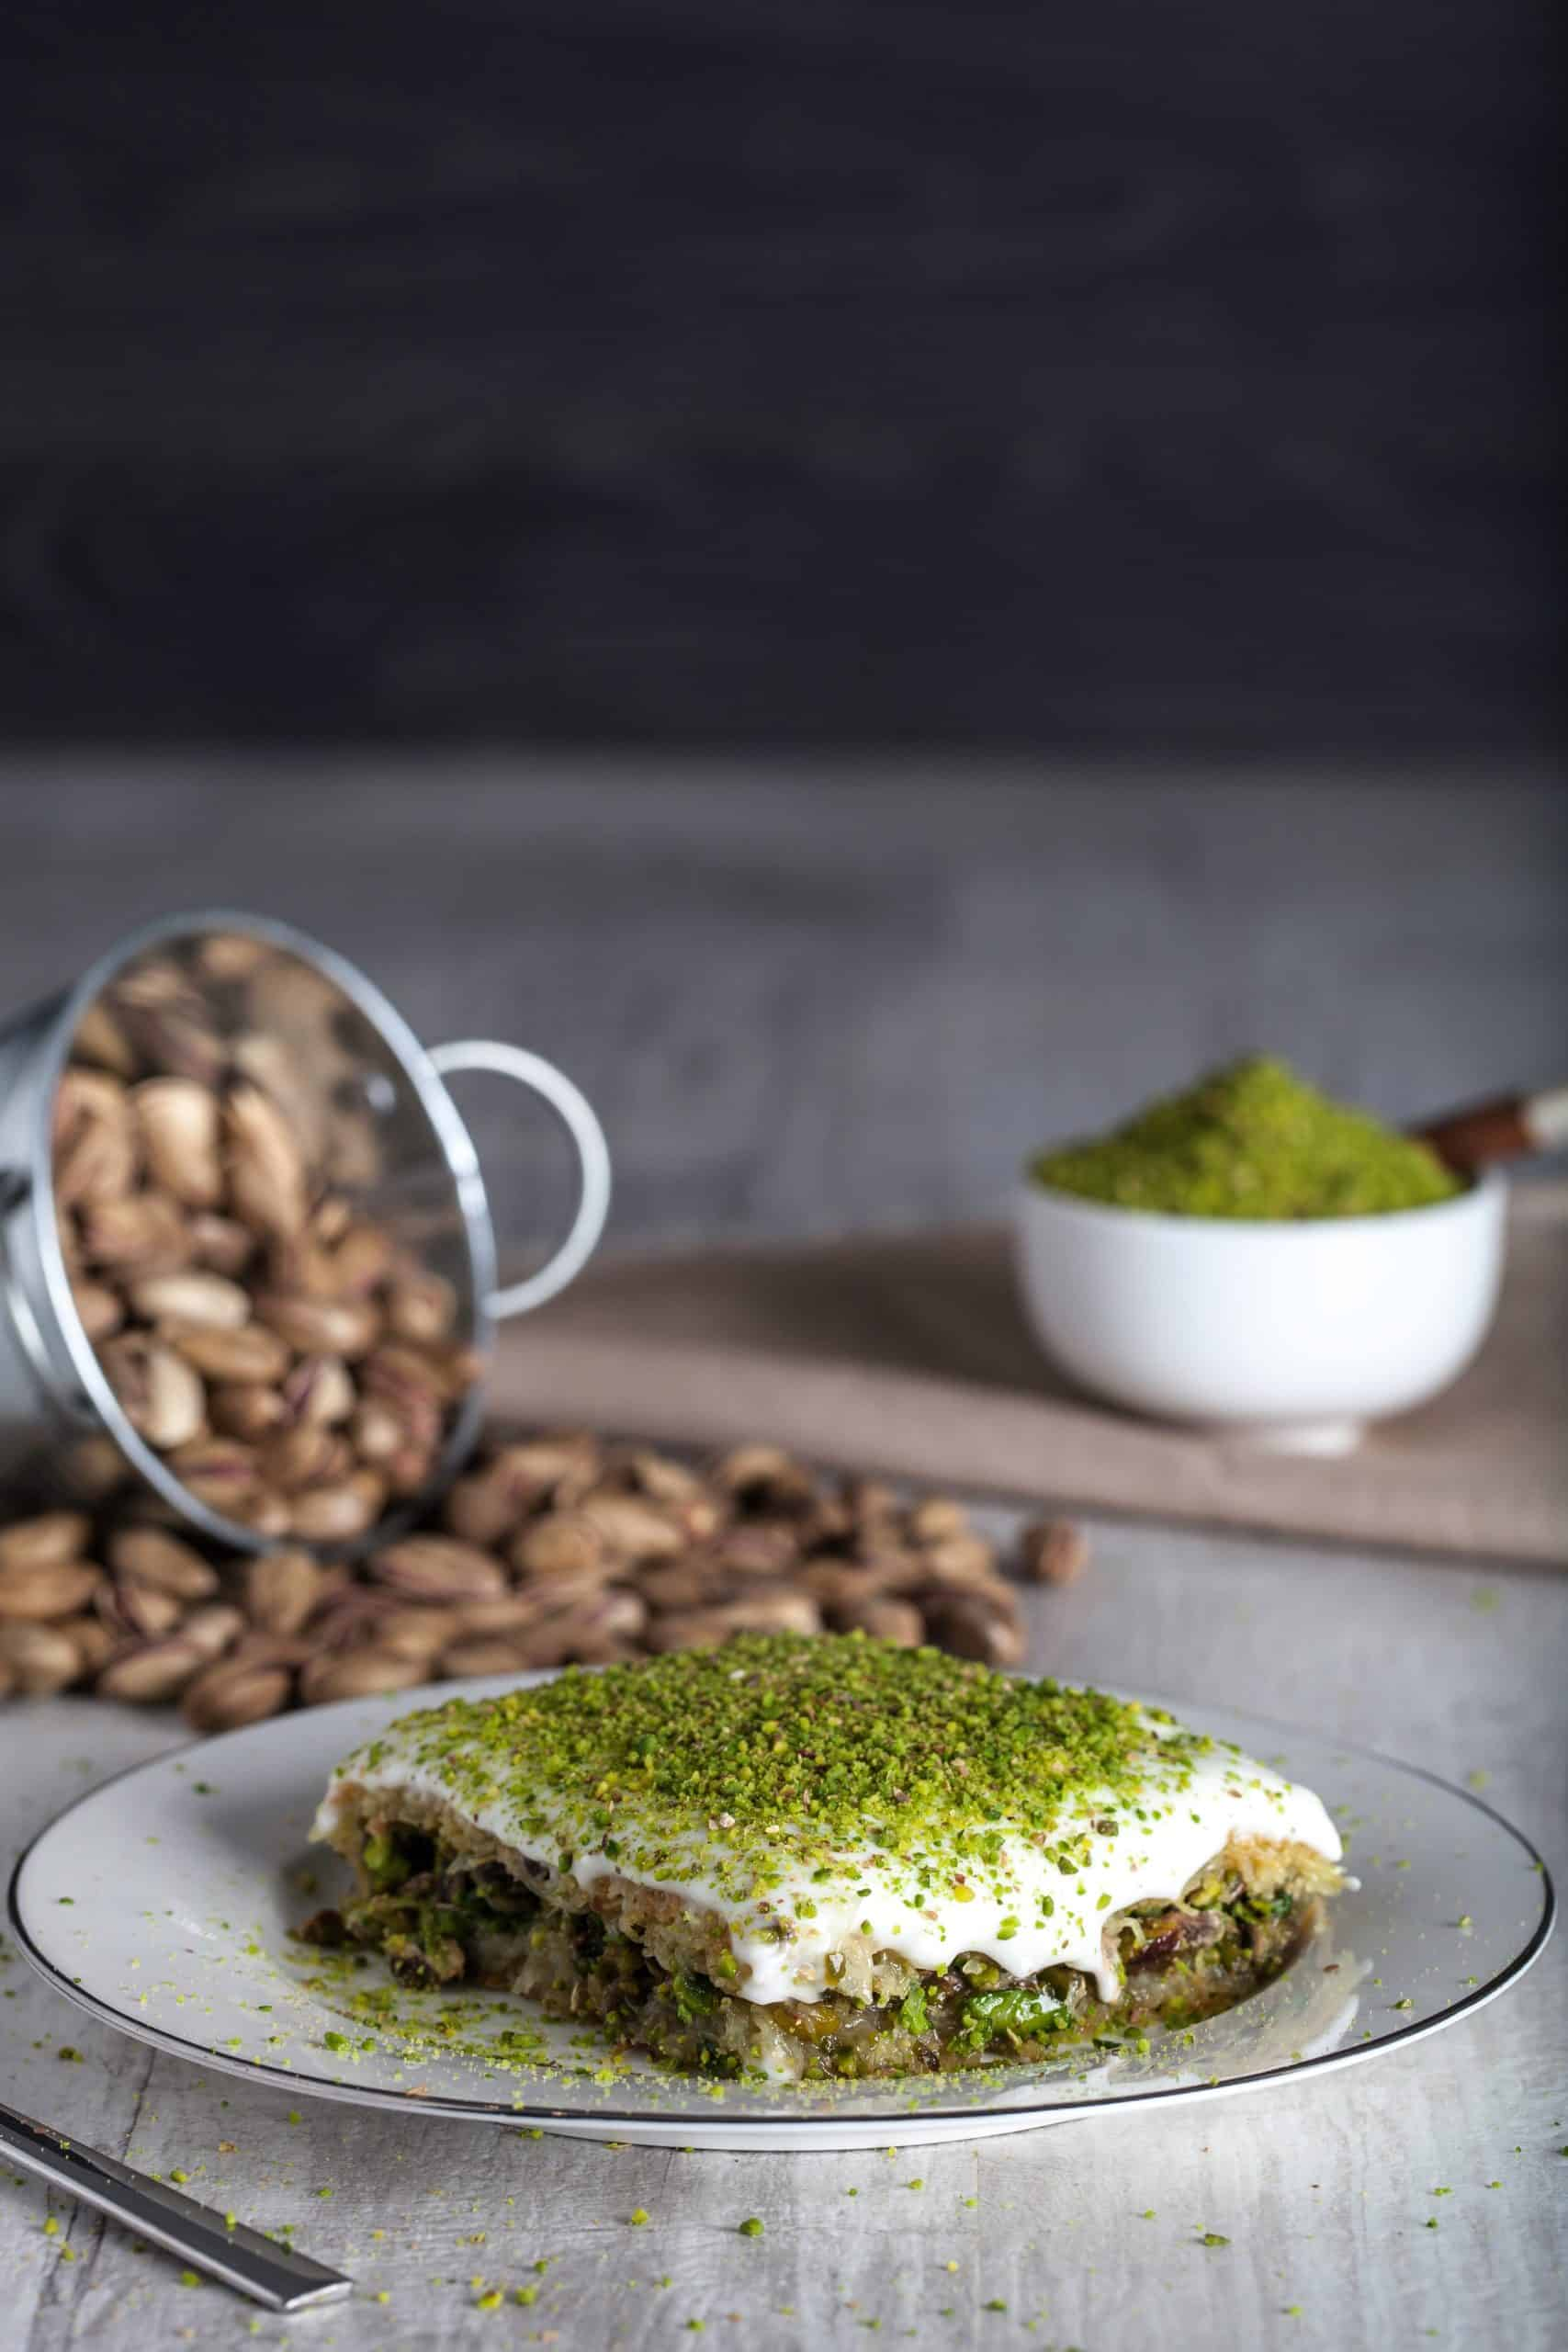 How To Make The Baklava? – Best Dessert Recipe You Should Try